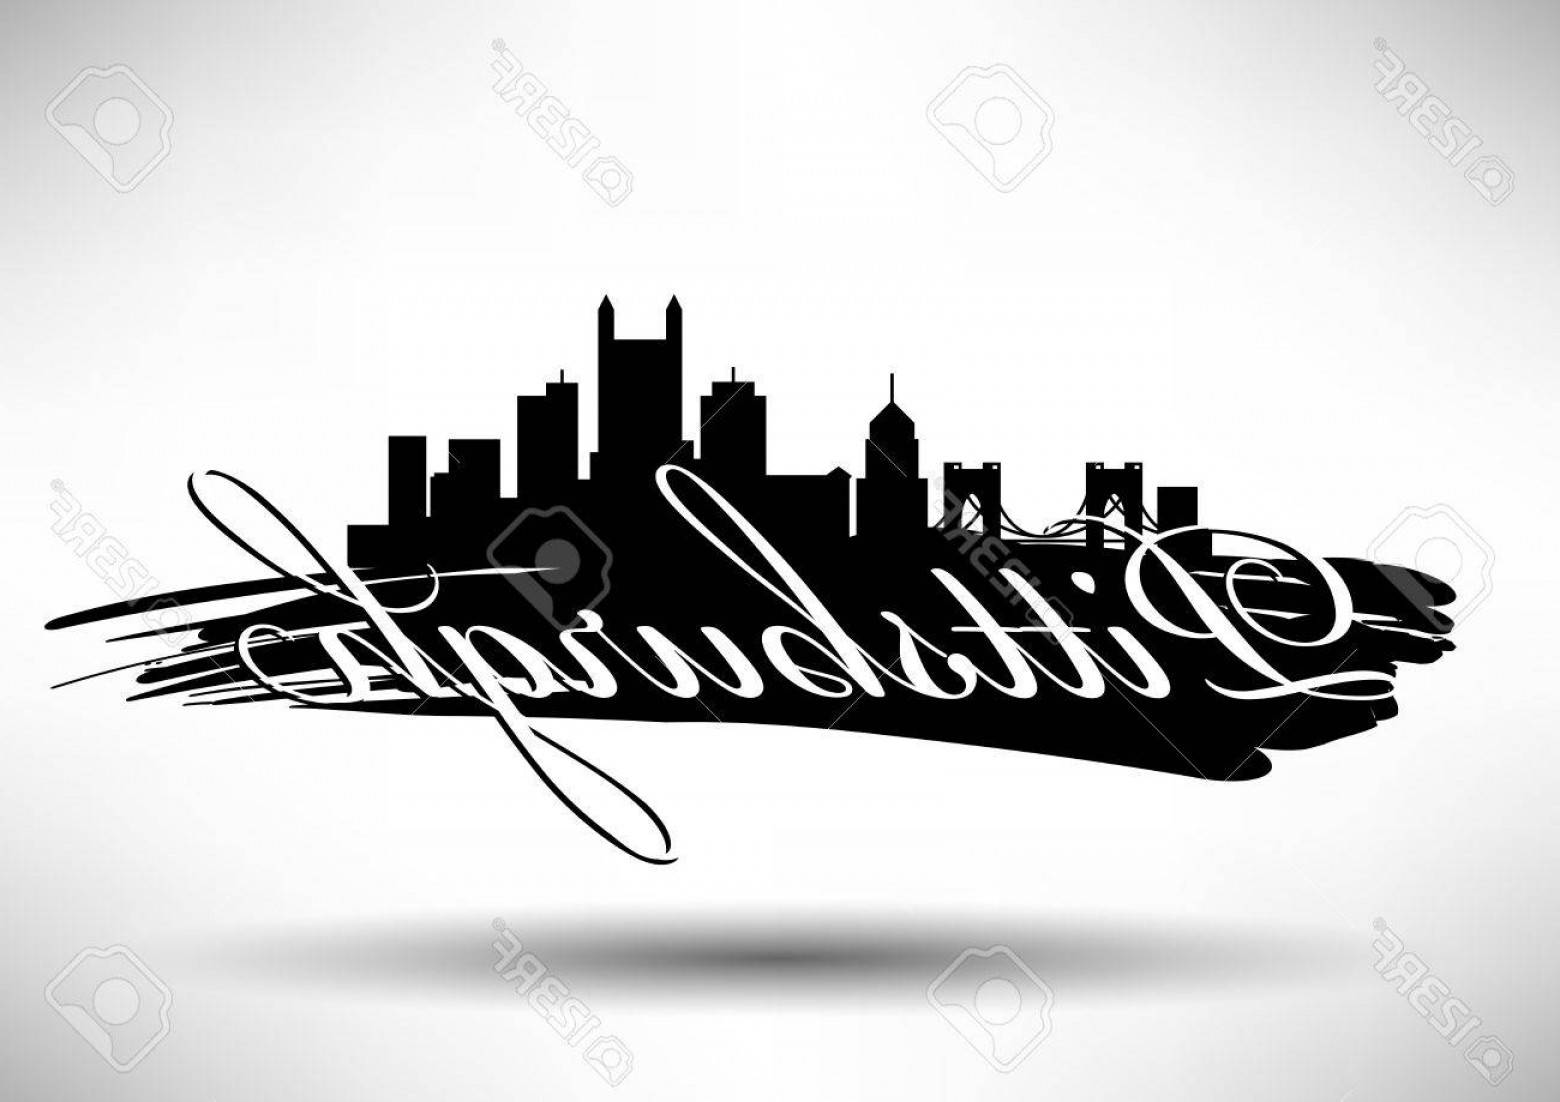 Pittsburgh City Skyline Vector: Photovector Graphic Design Of Pittsburgh City Skyline